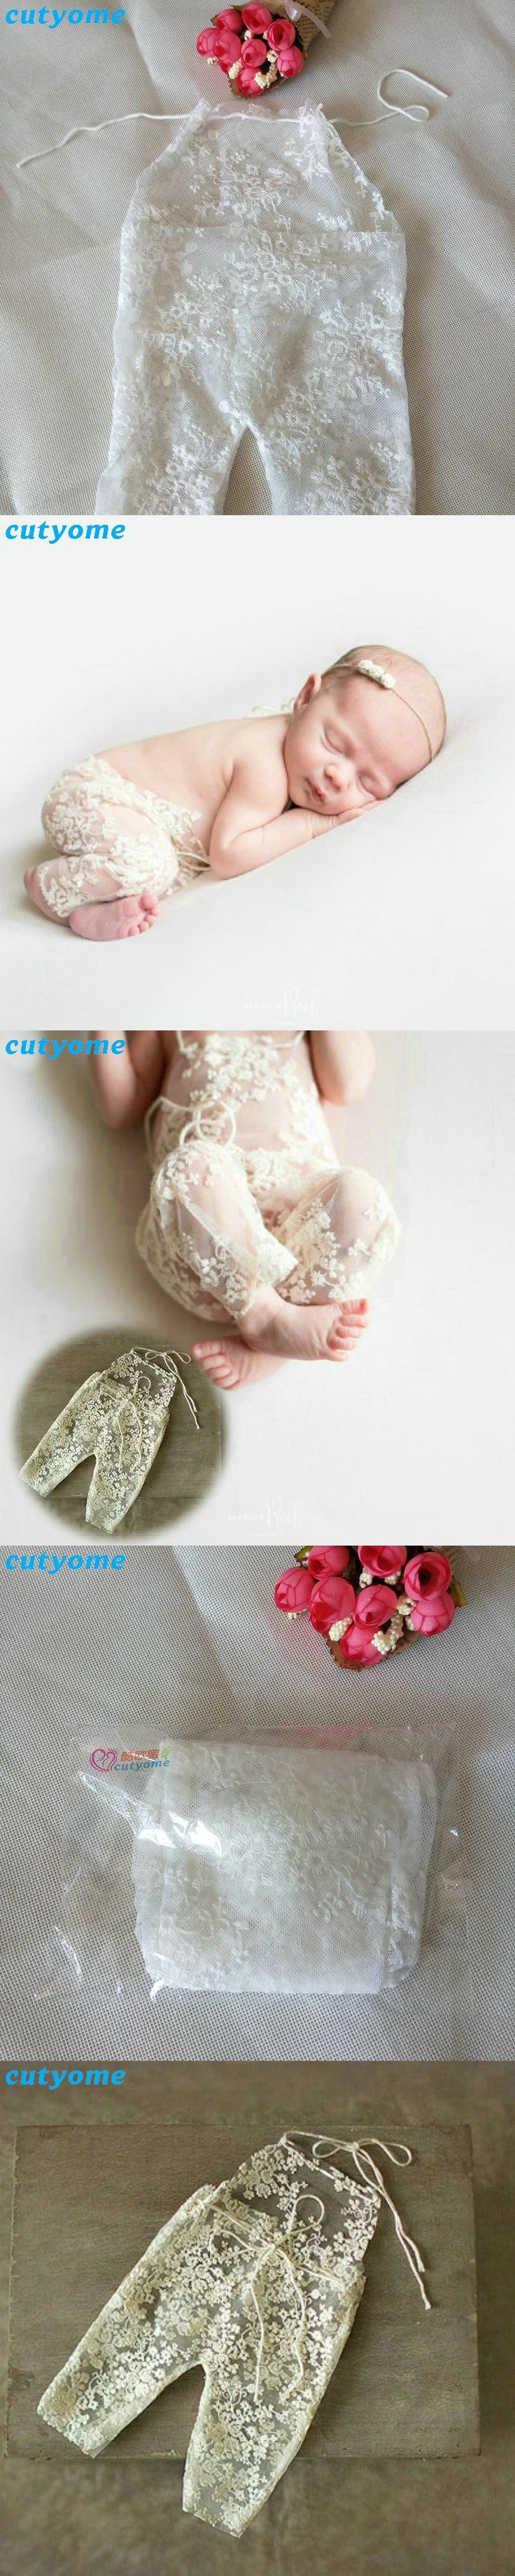 Baby Hat 2017 New Born Photography Accessories Baby Lace Romper Fotografia Princess Wraps Costumes Clothes For Infantil Girls